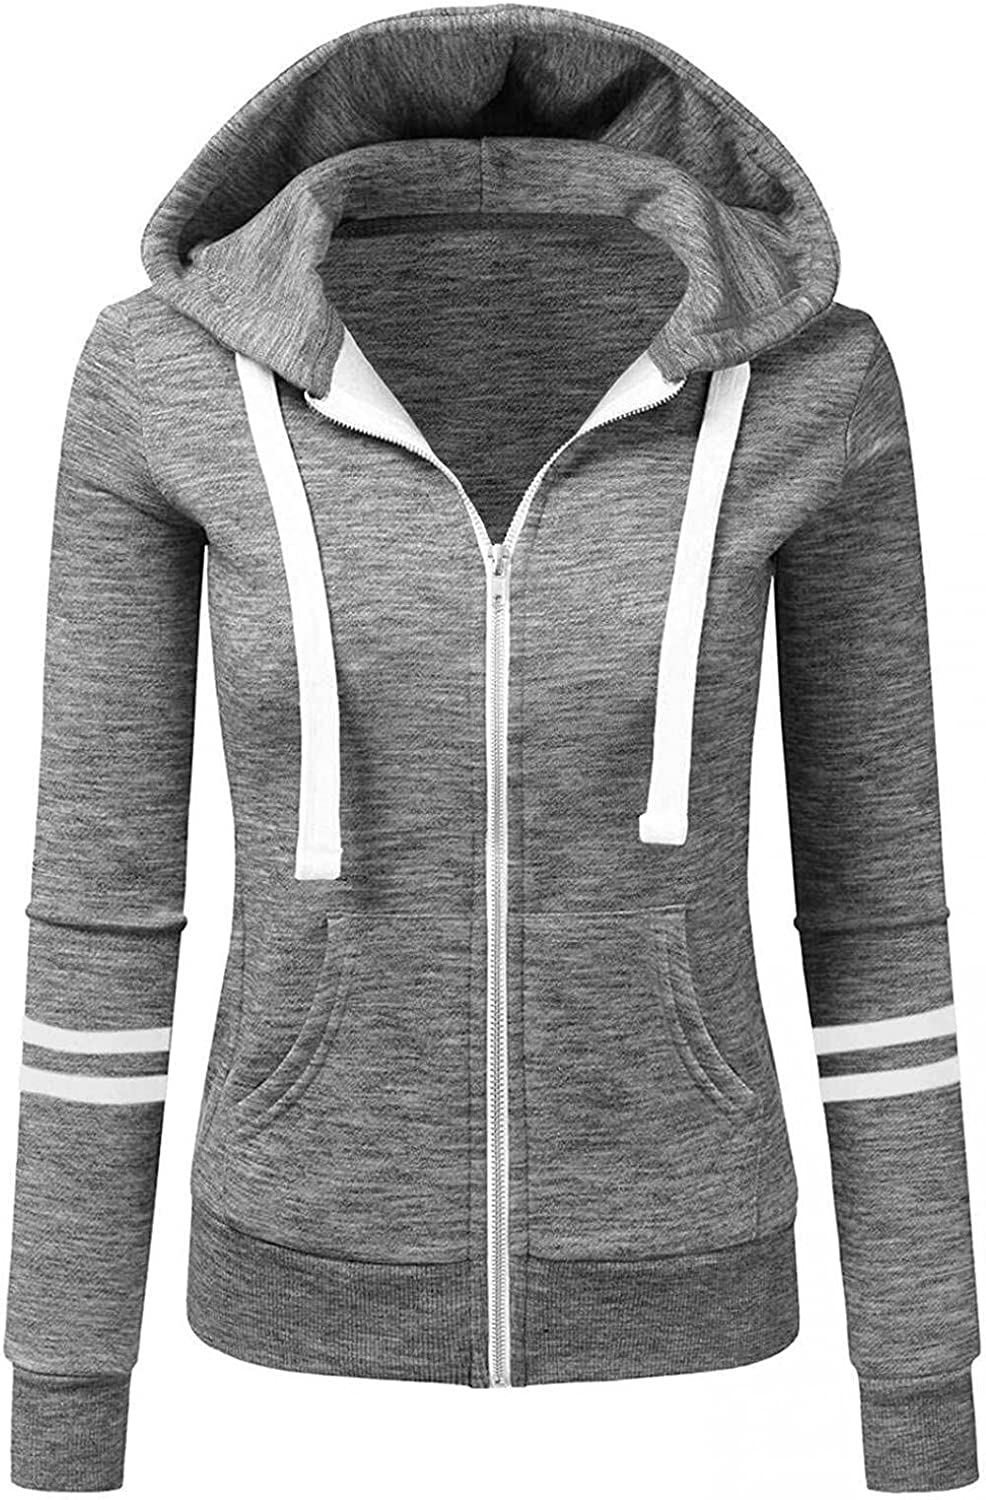 Haheyrte Hoodies for Womens Womens Solid Color Sports Cardigan Zipper Hooded Jacket Casual Sweatshirts Pullover Tops Sweaters